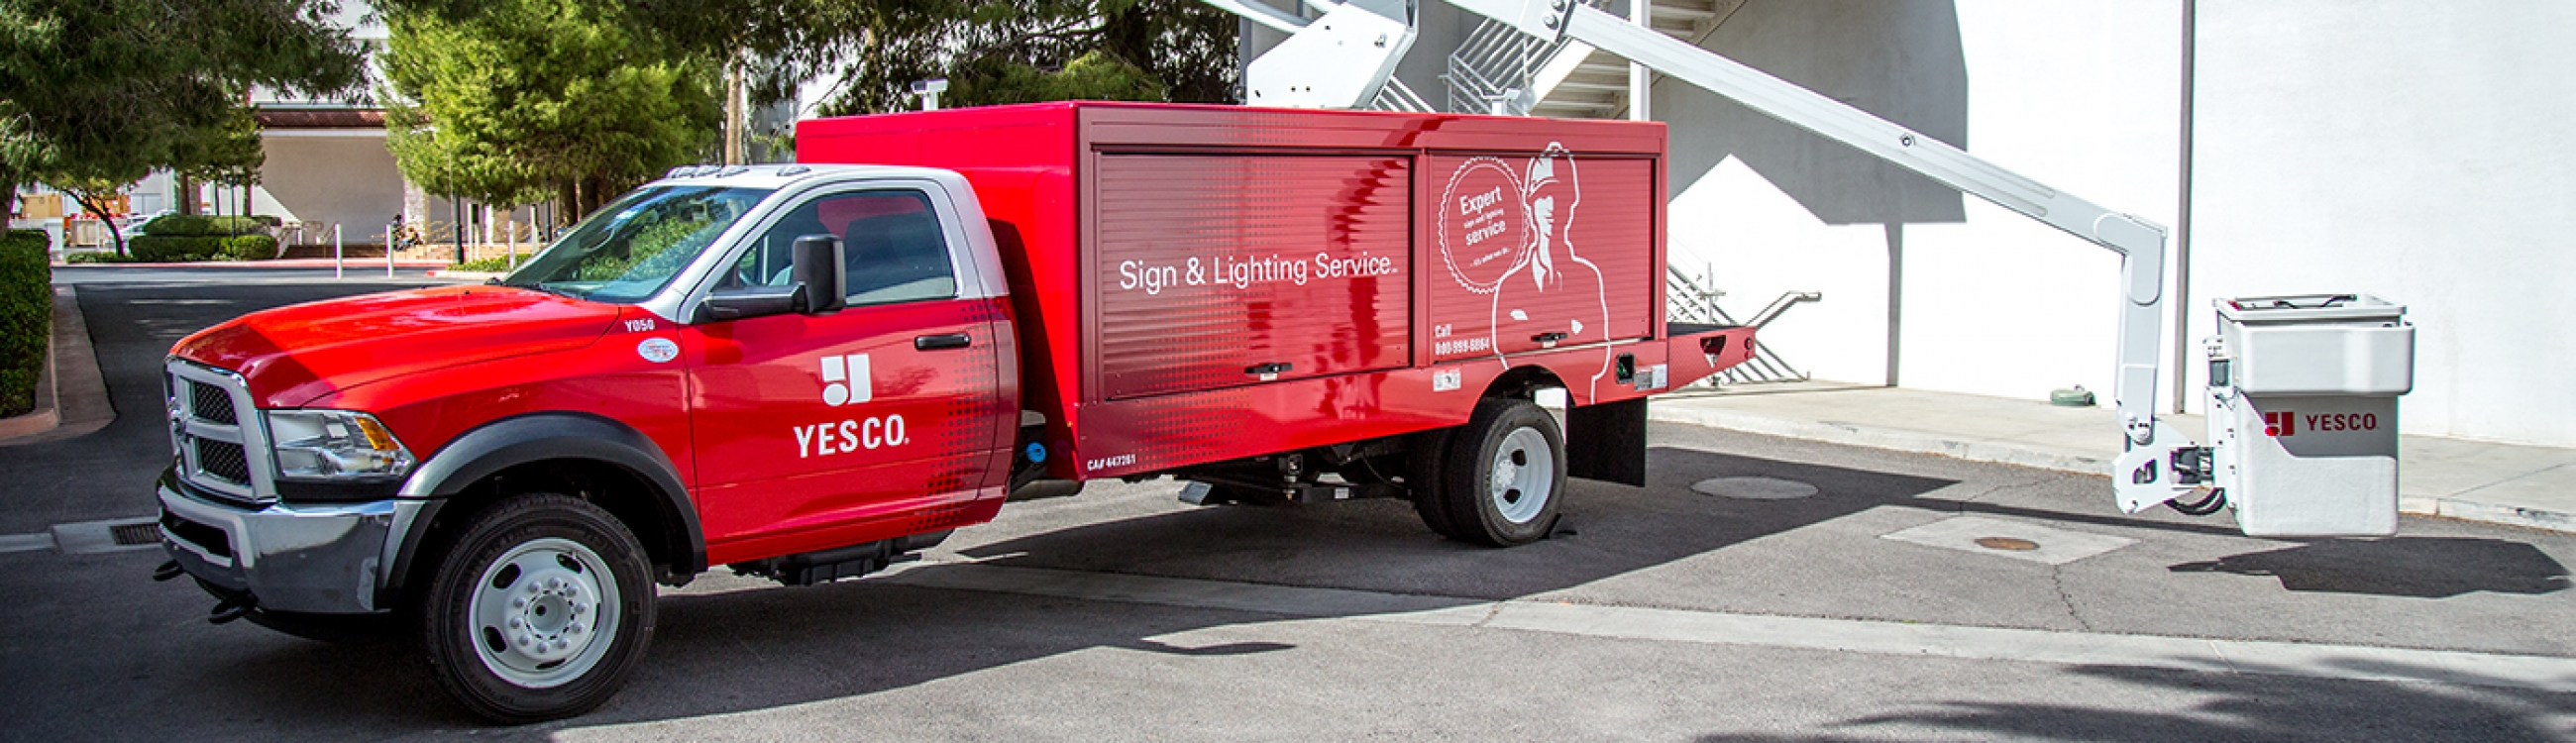 sign and lighting repair service hes sign